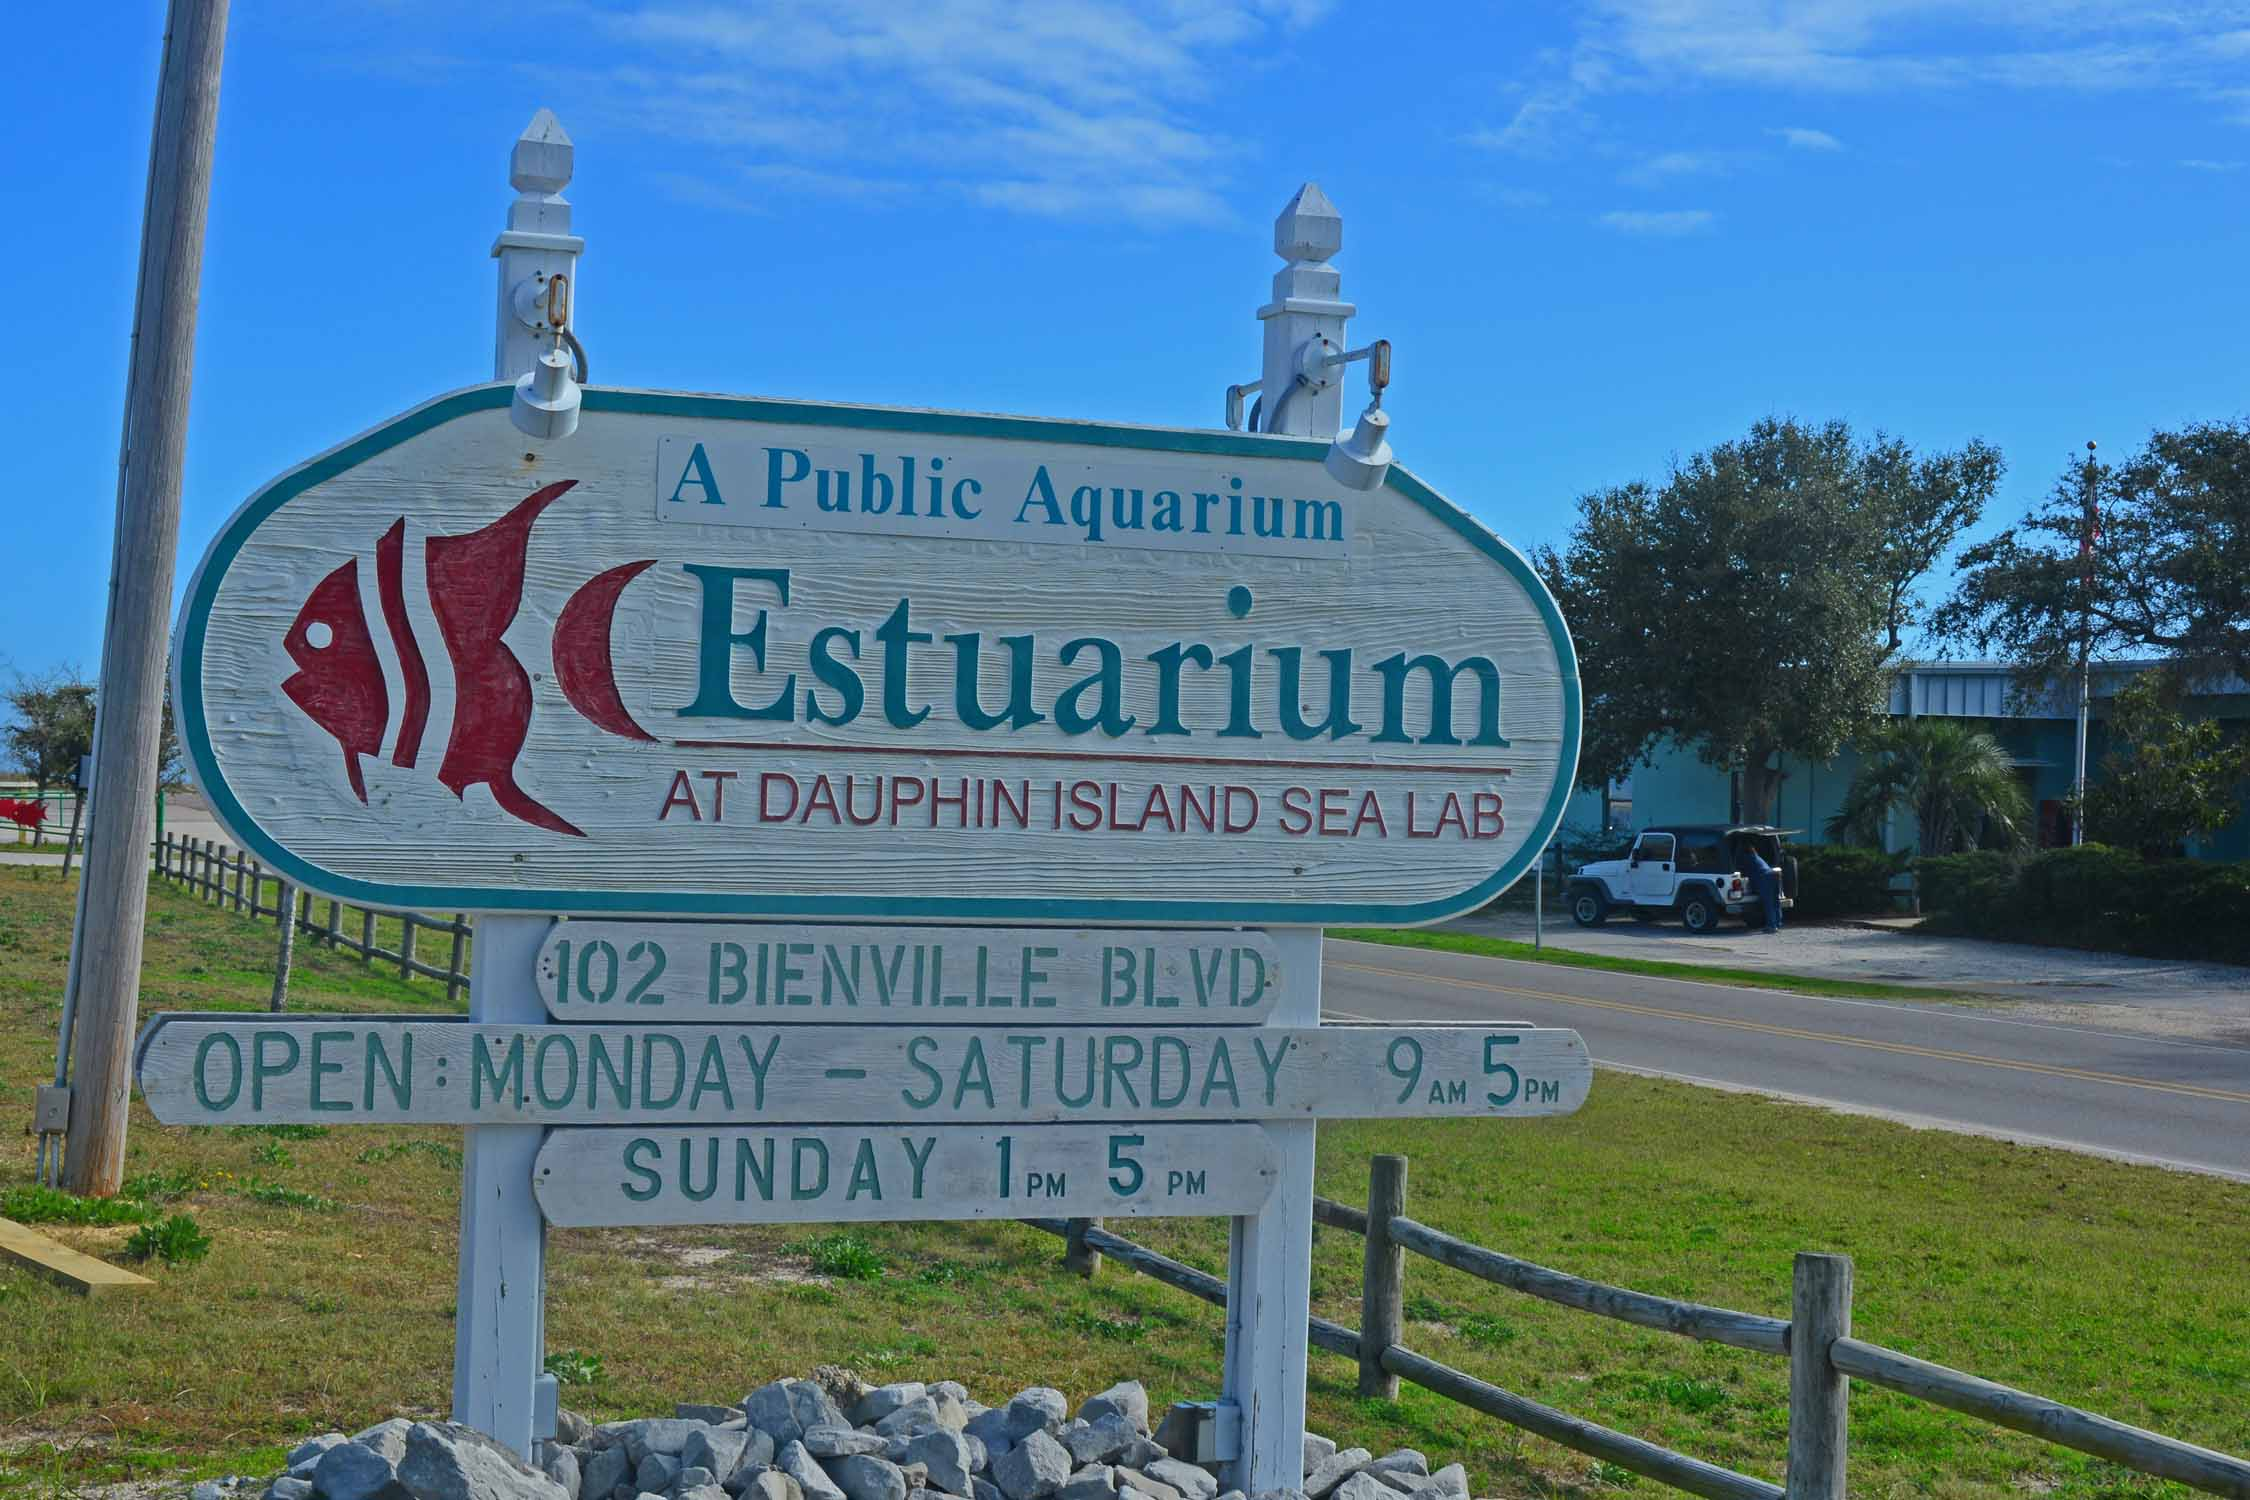 Dauphin Island Estuarium:  very educational and a nice way to spend a morning with NYC visitors.